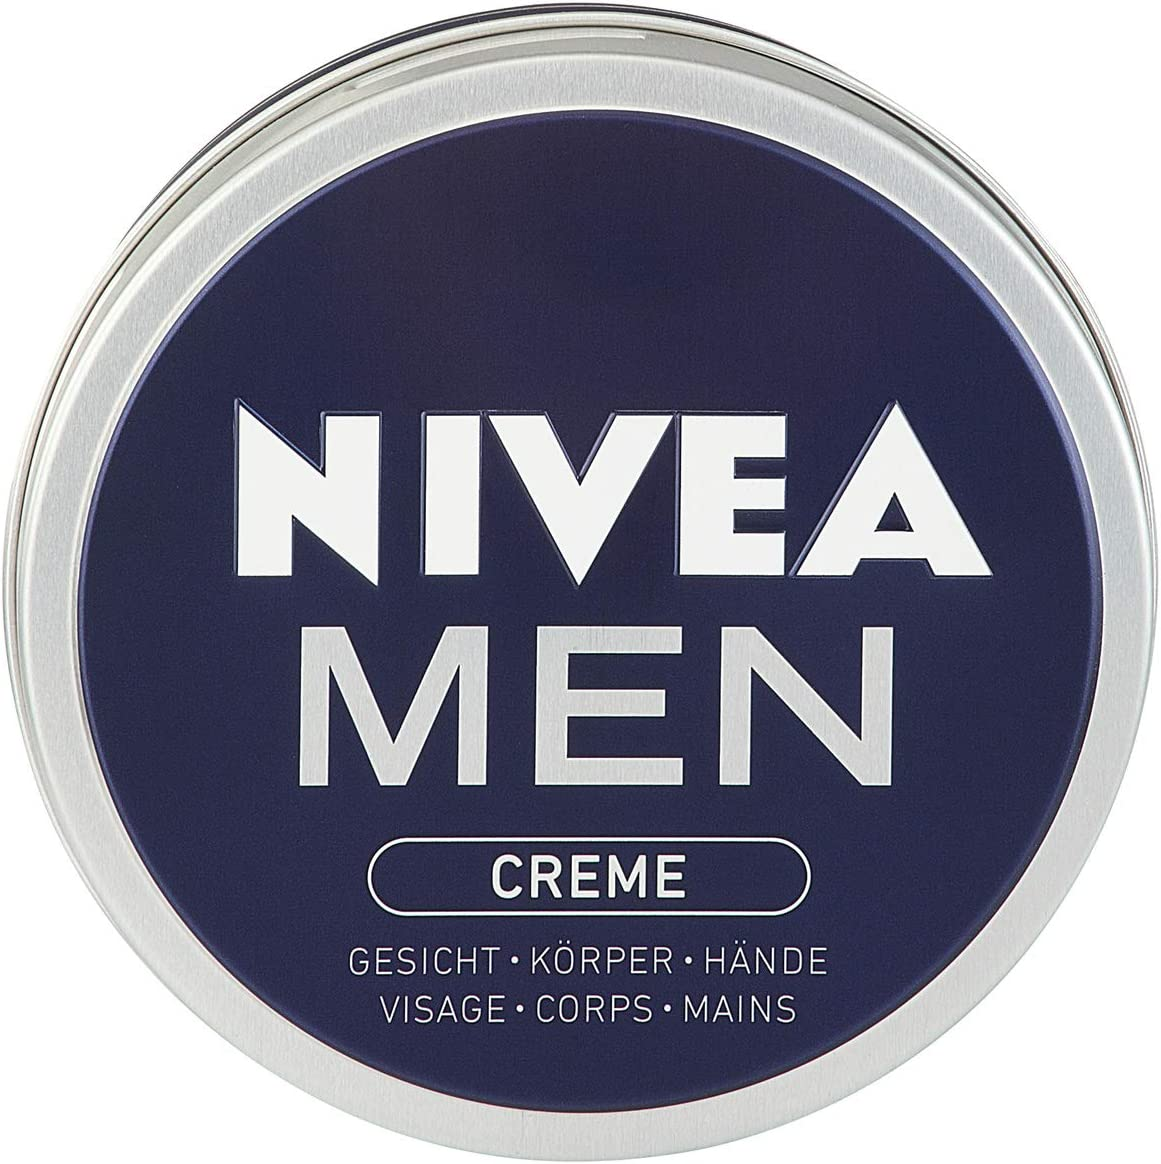 Nivea Men taza de crema de 150 ml, 4-pack (4 x 150 ml) - Version ...